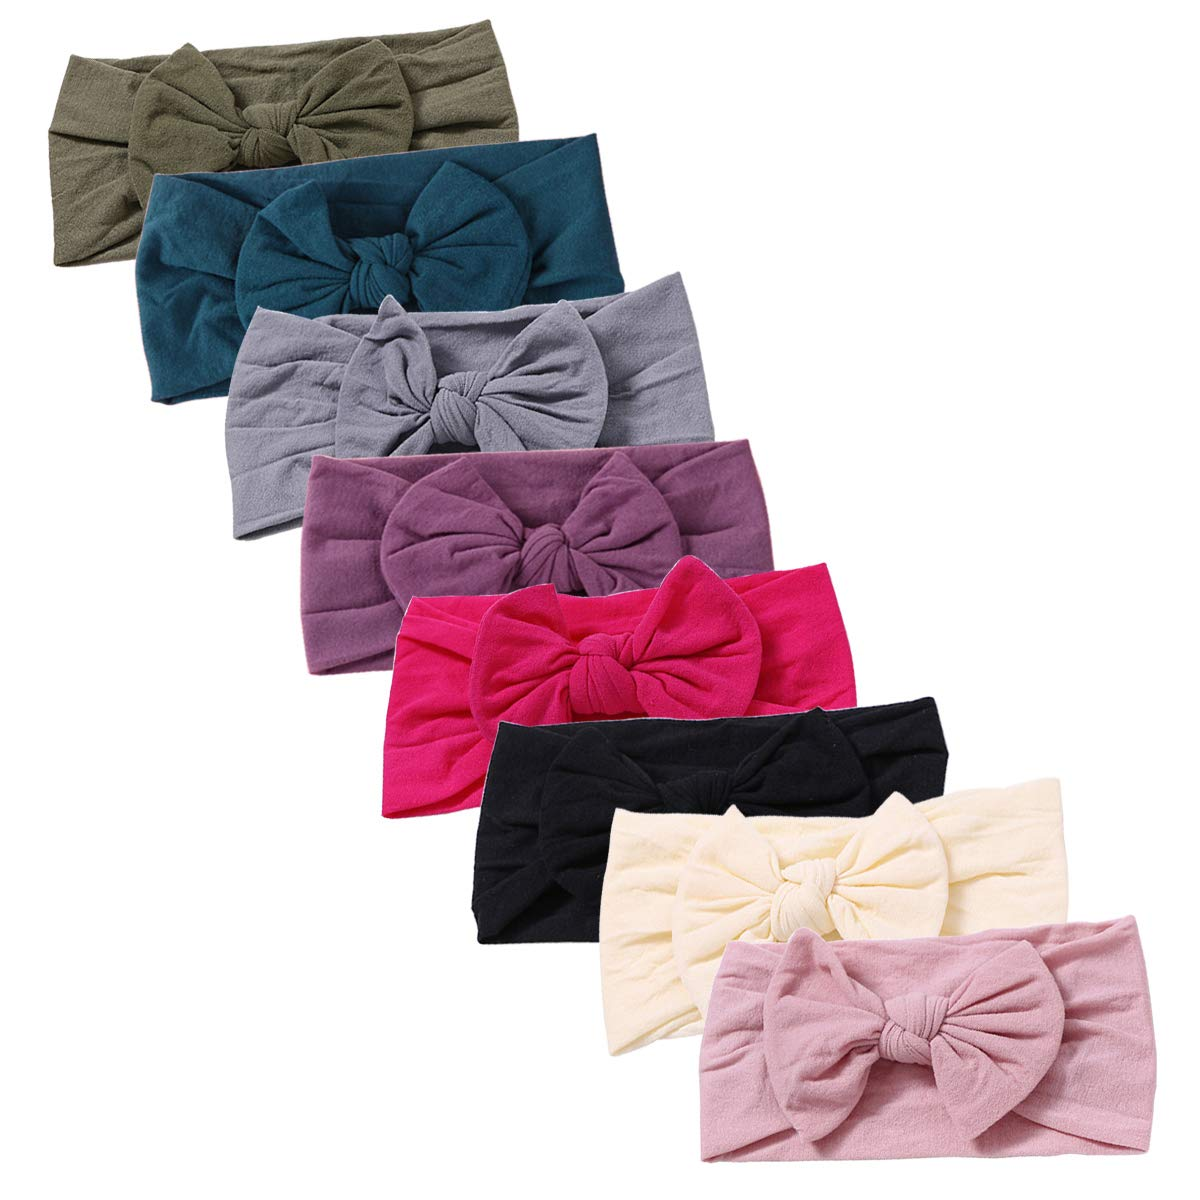 Baby Girl Nylon Headbands Newborn Infant Toddler Hairbands and Bows Child Hair Accessories (AM05-8pcs)